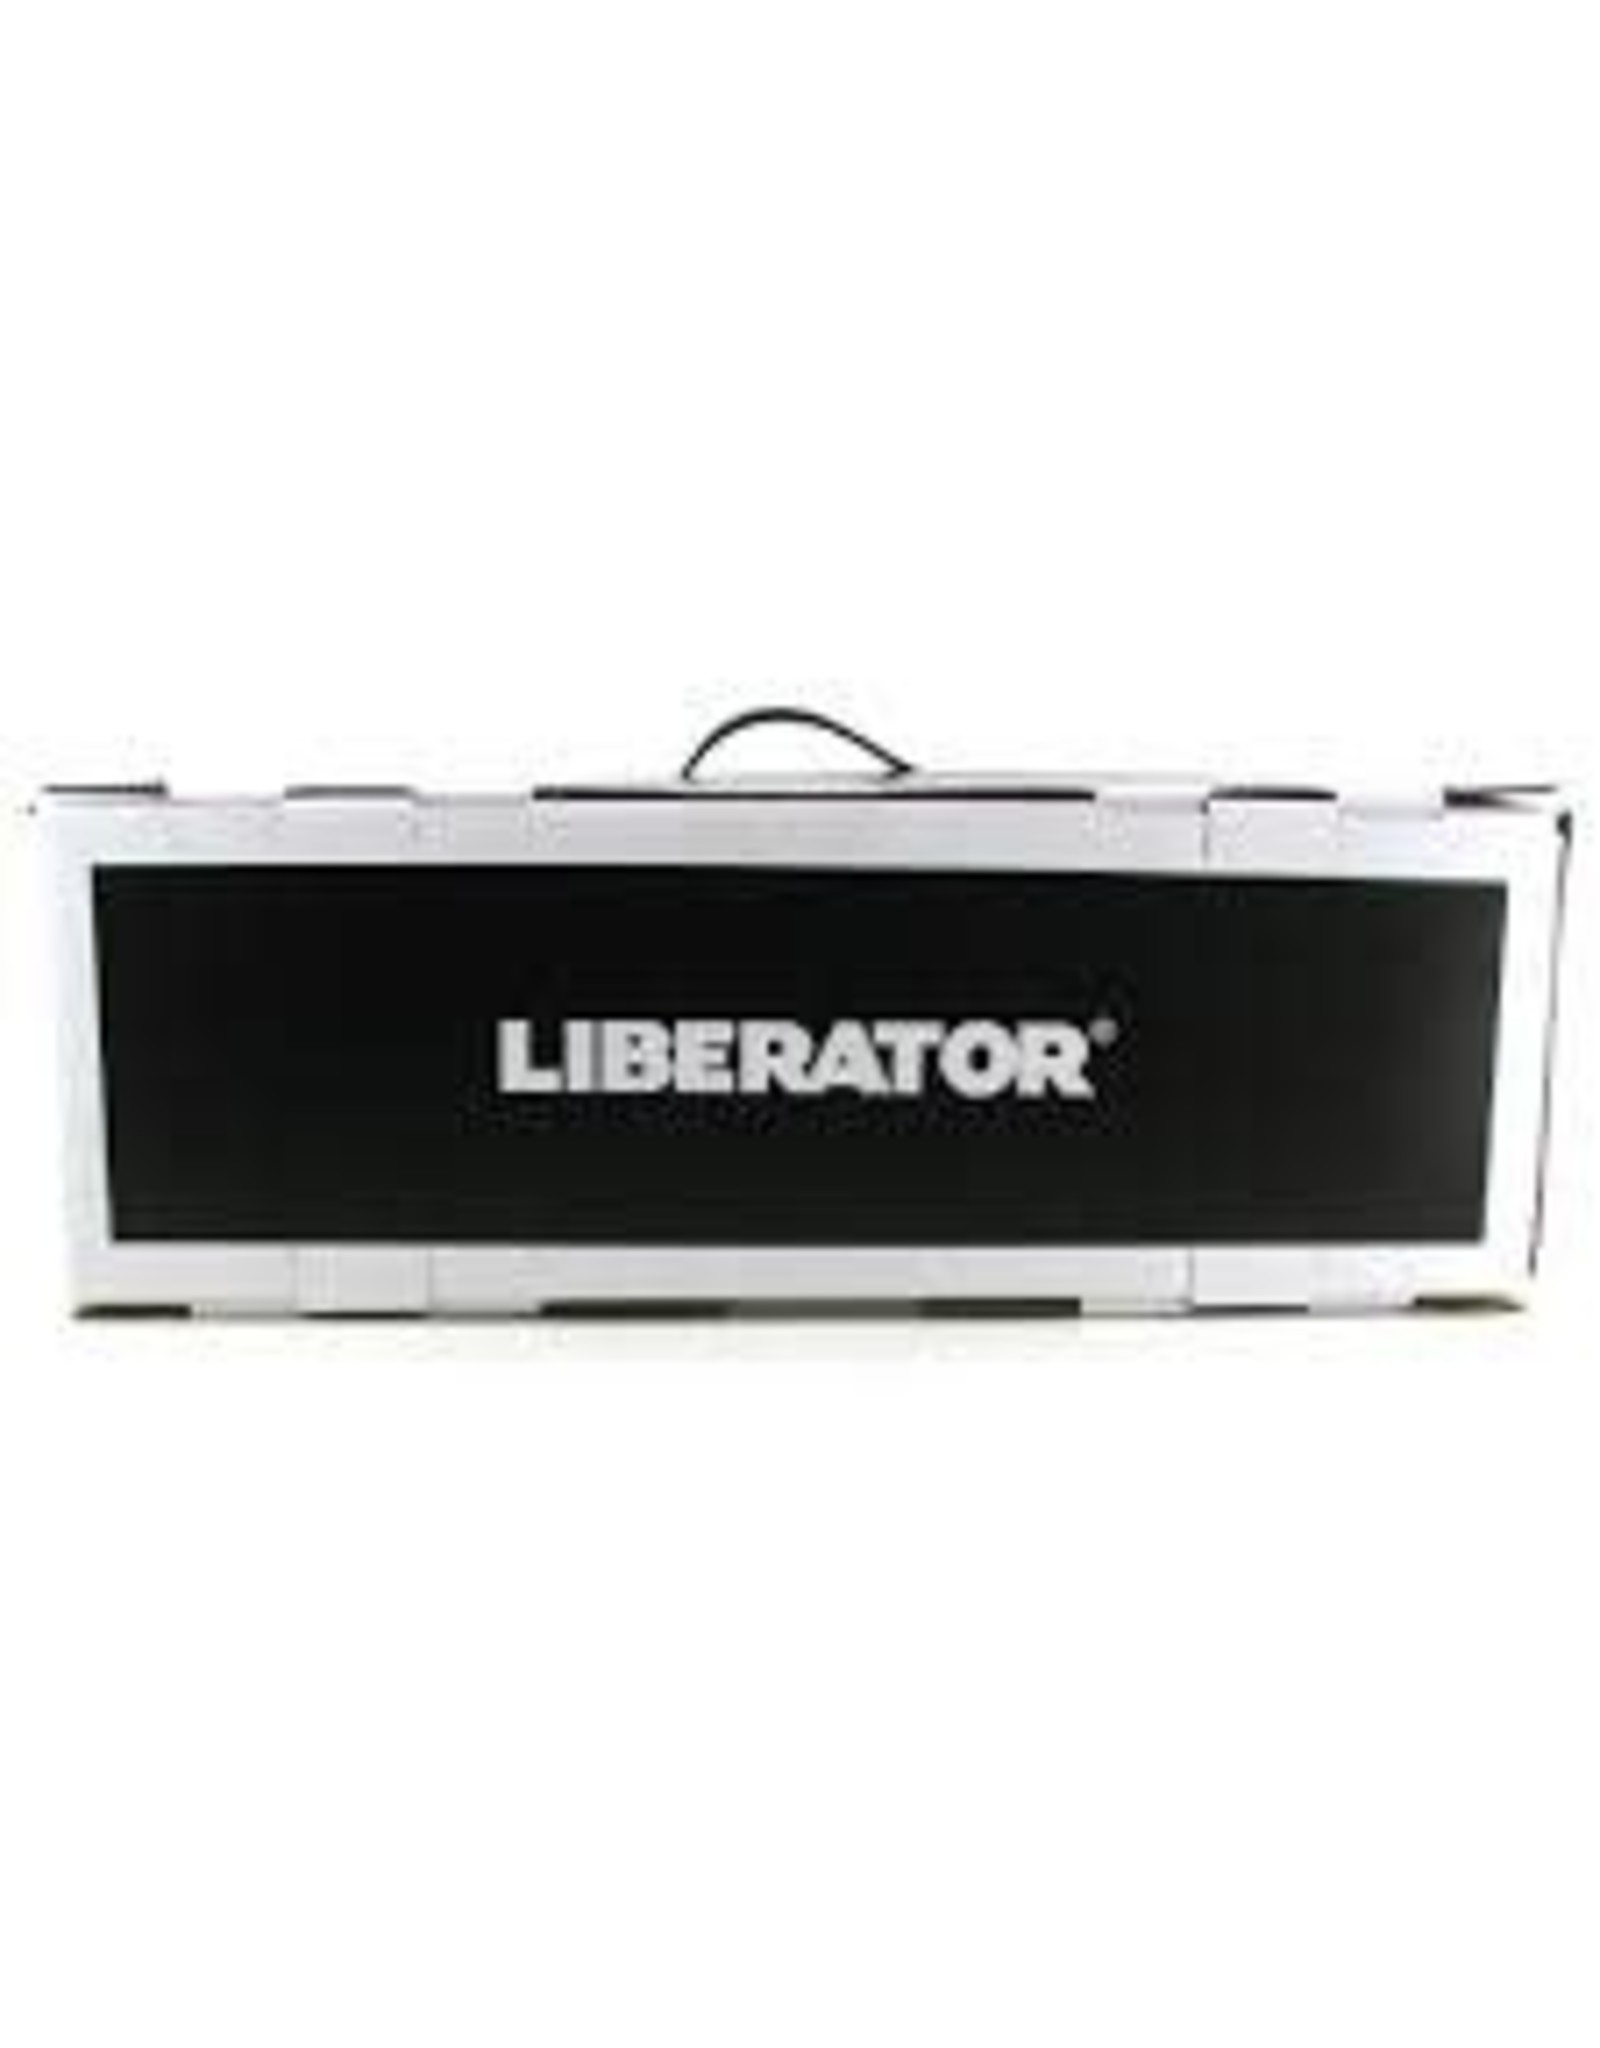 Liberation BonBon Toy Mount